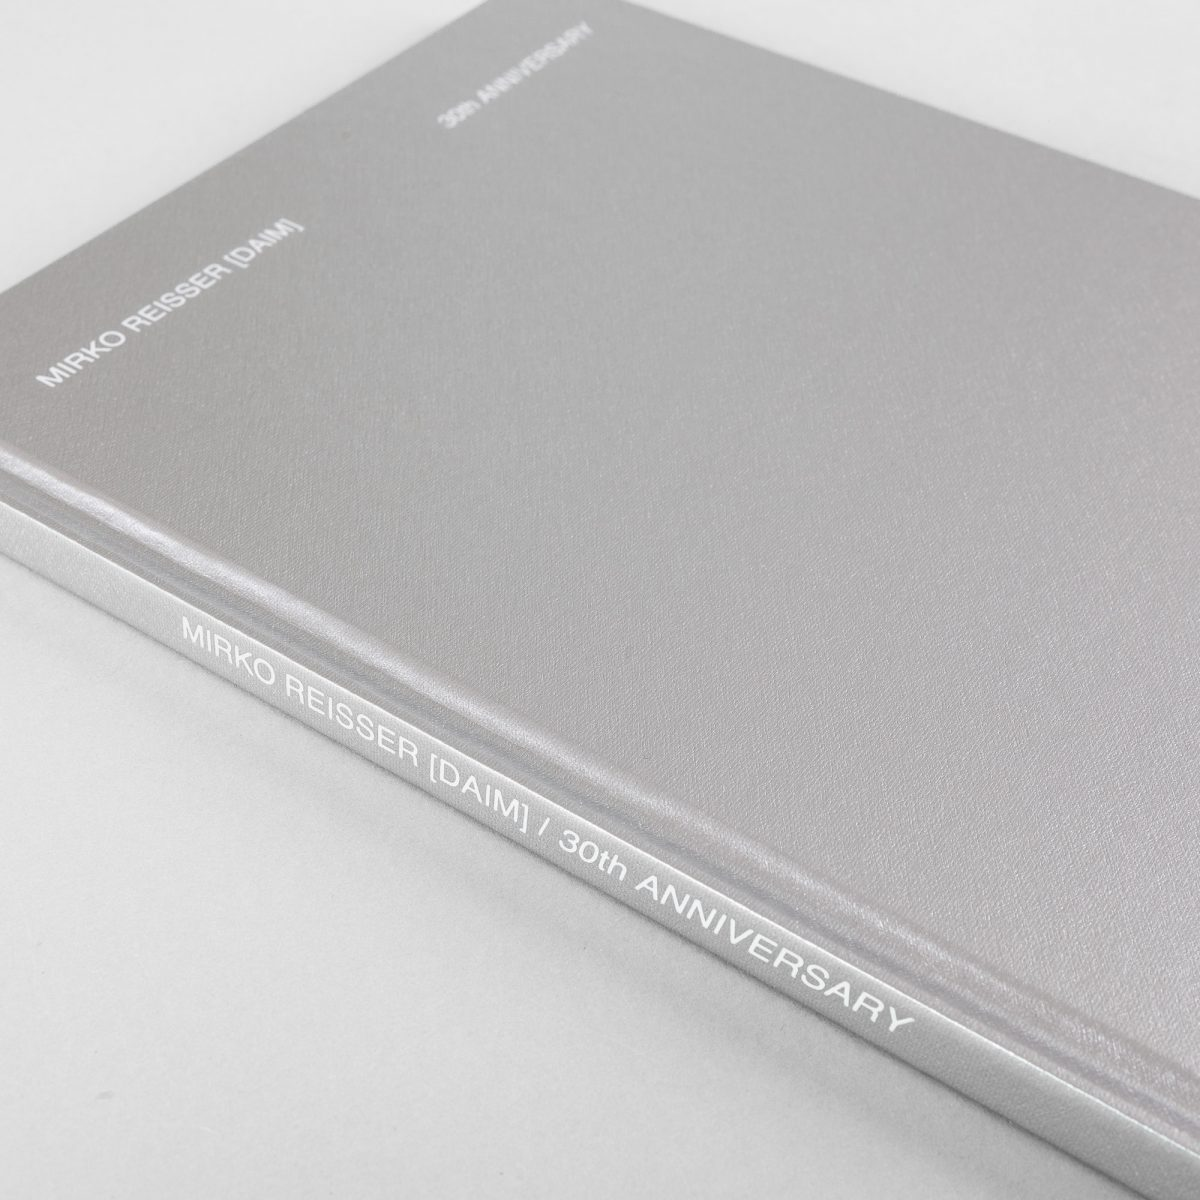 Christian Omodeo (Chiefed.), Jacob Kimvall, Nicolas Couturieux (Aut.); Mirko Reisser (DAIM): ''Mirko Reisser (DAIM) | 30th Anniversary: exhibition catalogue at HANGAR 107 in Rouen, France from 5th july till 4th september 2019''. Original Edition. Hardcover, English / French. Hangar 107, Rouen, France (2019). Series: Hangar 107, No: 003. 30 x 21,5 x 1,1 cm / 11.81 x 8.46 x 0.43 inch, ISBN 978-2-9567403-2-2, 72 full color pages offset printed. More participant persons: Stephanie Lemoine (Author), Fred Nicolau (Layout/Graphic), Julien Tragin (Photographer). | Courtesy: Hangar 107 | © Nicolas Couturieux / Hangar 107, Mirko Reisser (DAIM), and authors and others | Photo: MRpro